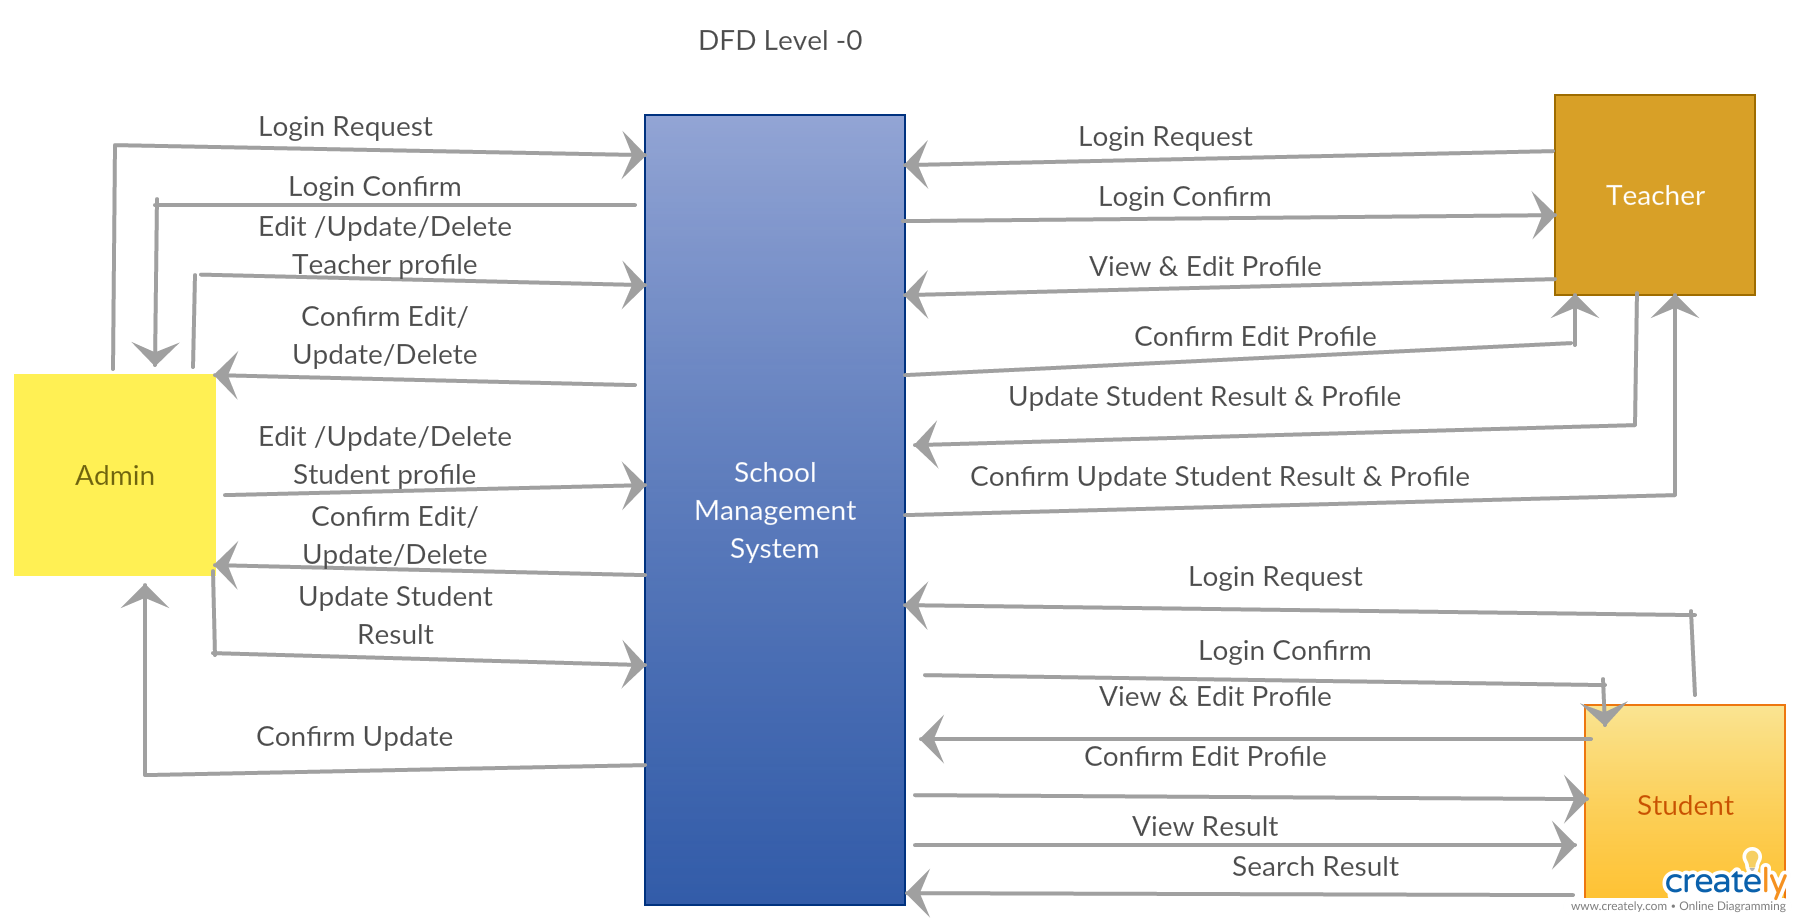 DFD level 0 of school management System - You can edit this